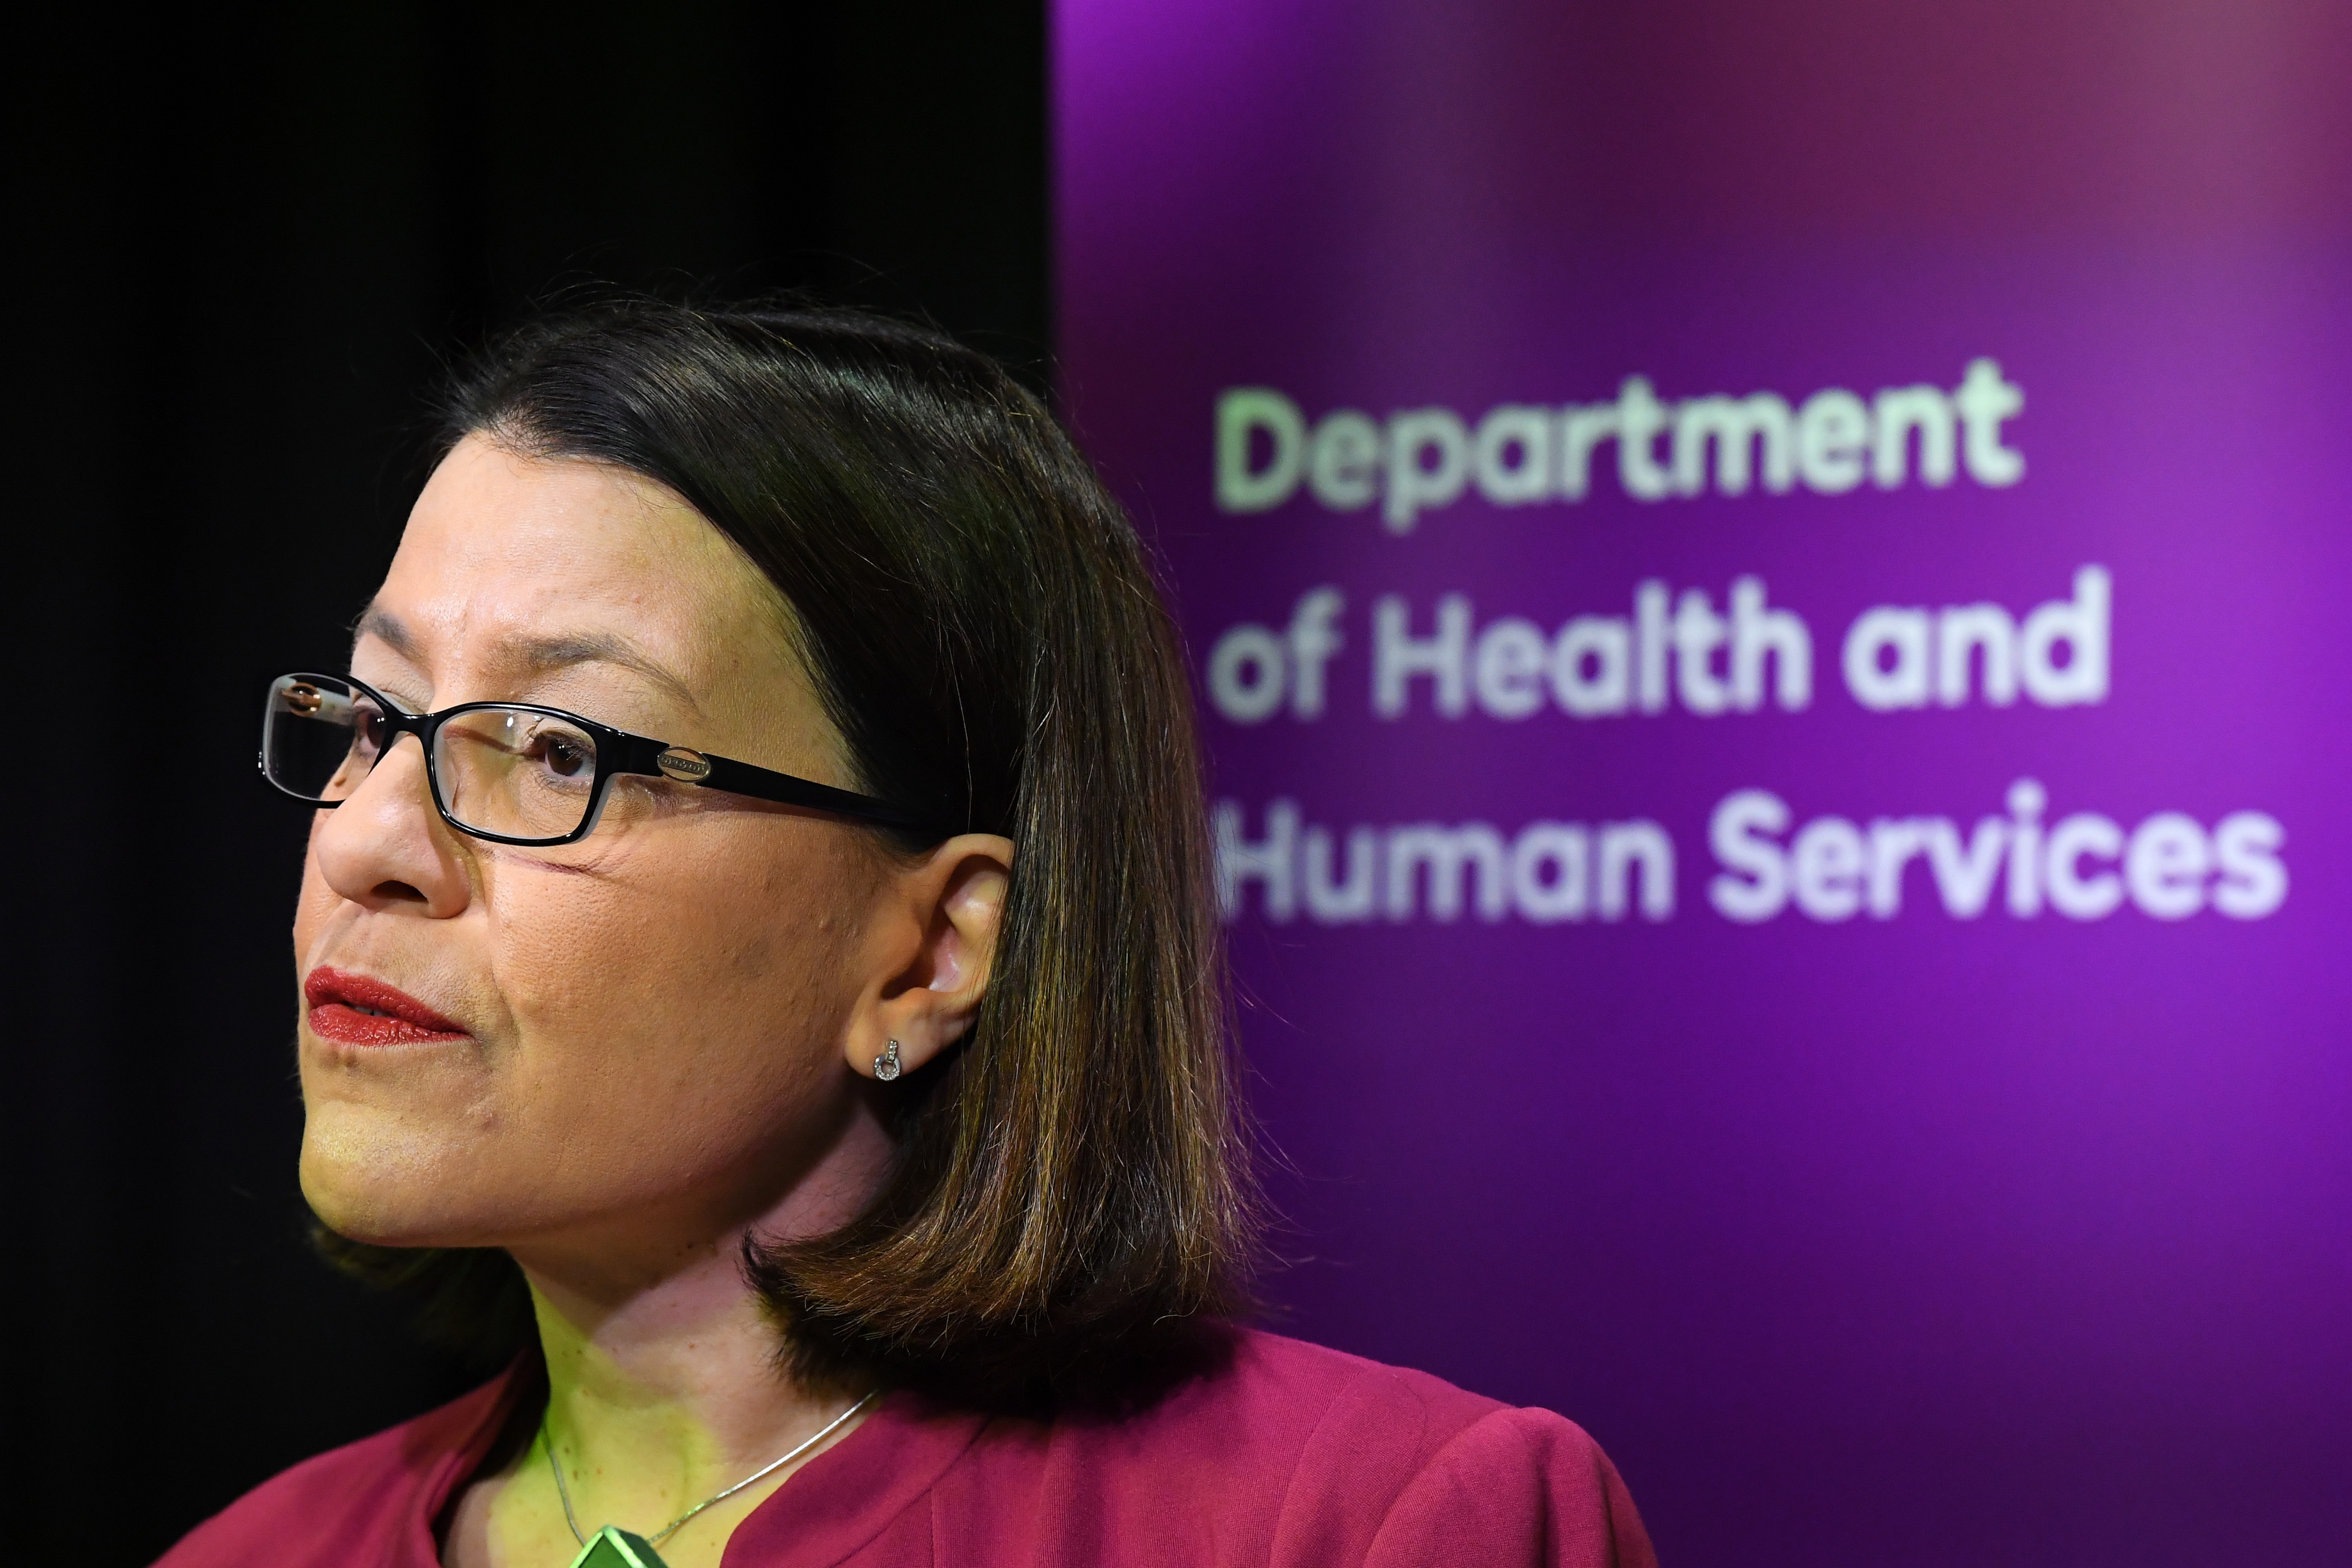 Victorian Health Minister Jenny Mikakos speaks to media during a press conference, Monday, March 2, 2020.